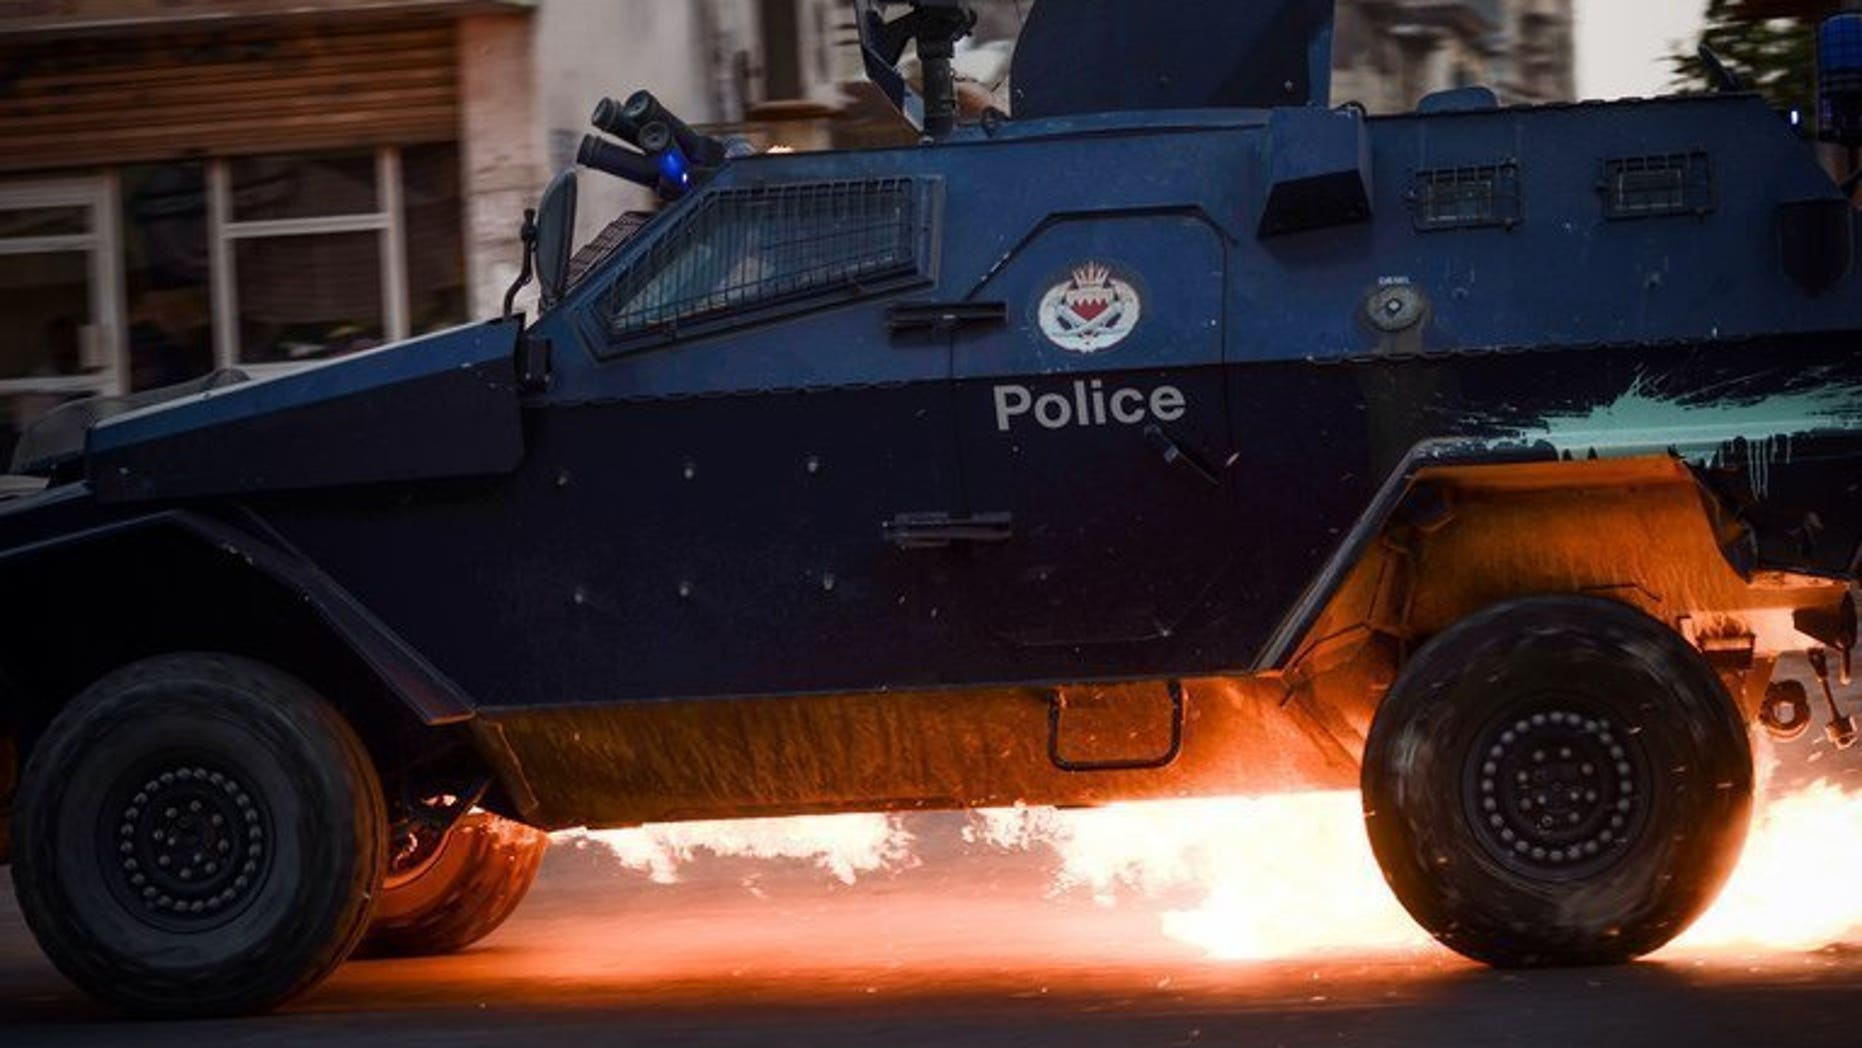 """A Bahraini riot-police car is hit by a petrol bomb during clashes in the village of Saar, on June 26, 2013. Bahrain's King Hamad has decreed stiffer penalties for """"terror acts"""" in the country rocked by a Shiite-led uprising since 2011, according to the official BNA news agency."""